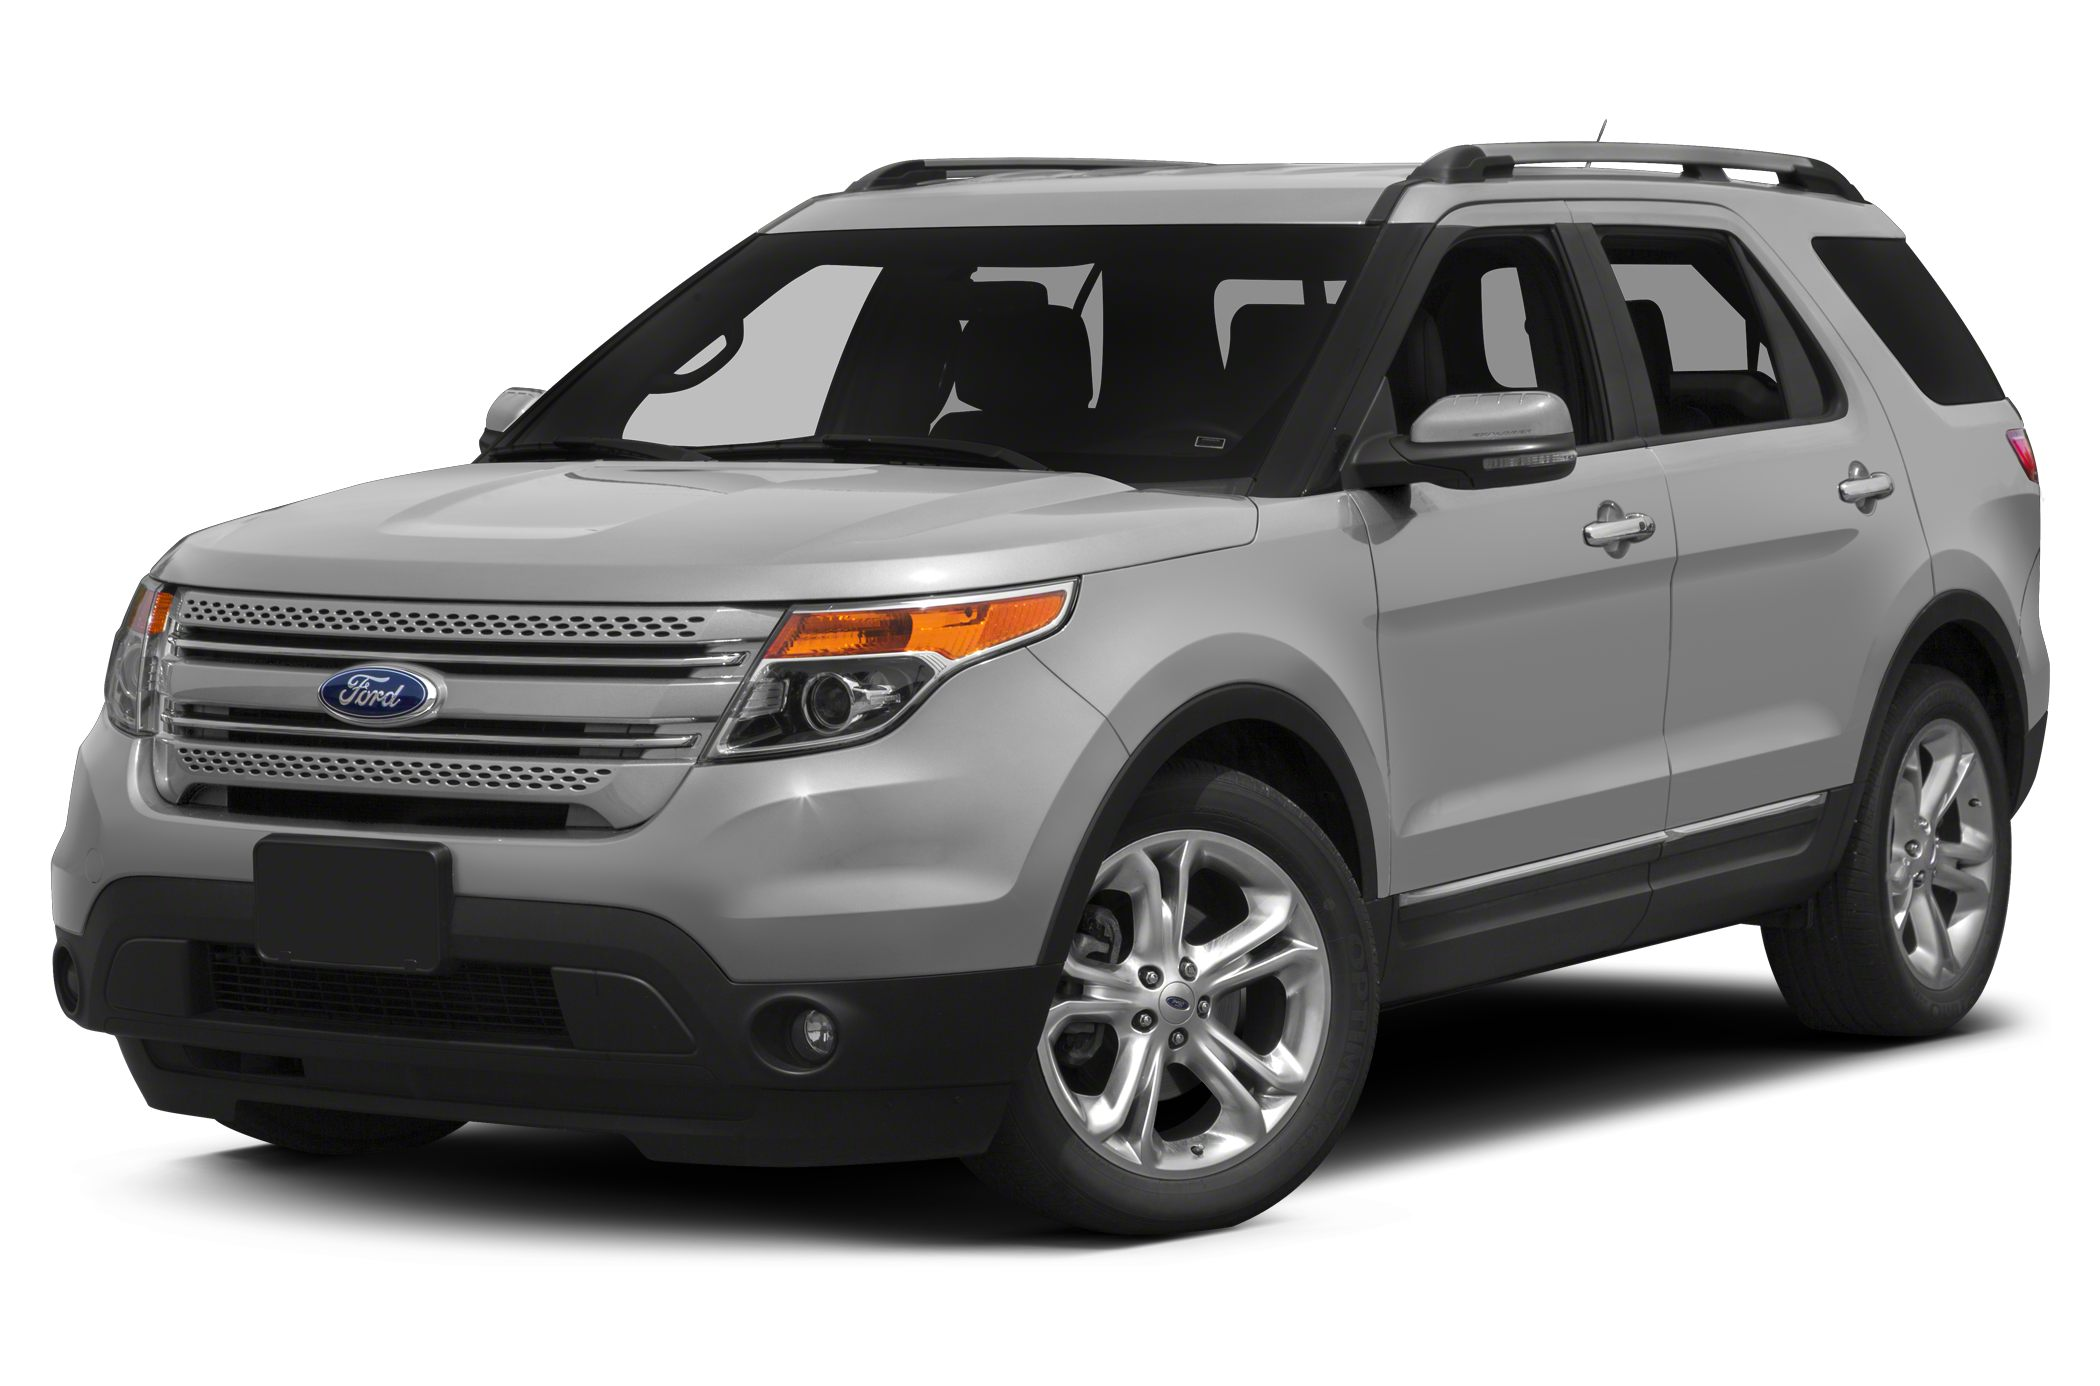 2015 Ford Explorer Limited SUV for sale in Comanche for $38,622 with 0 miles